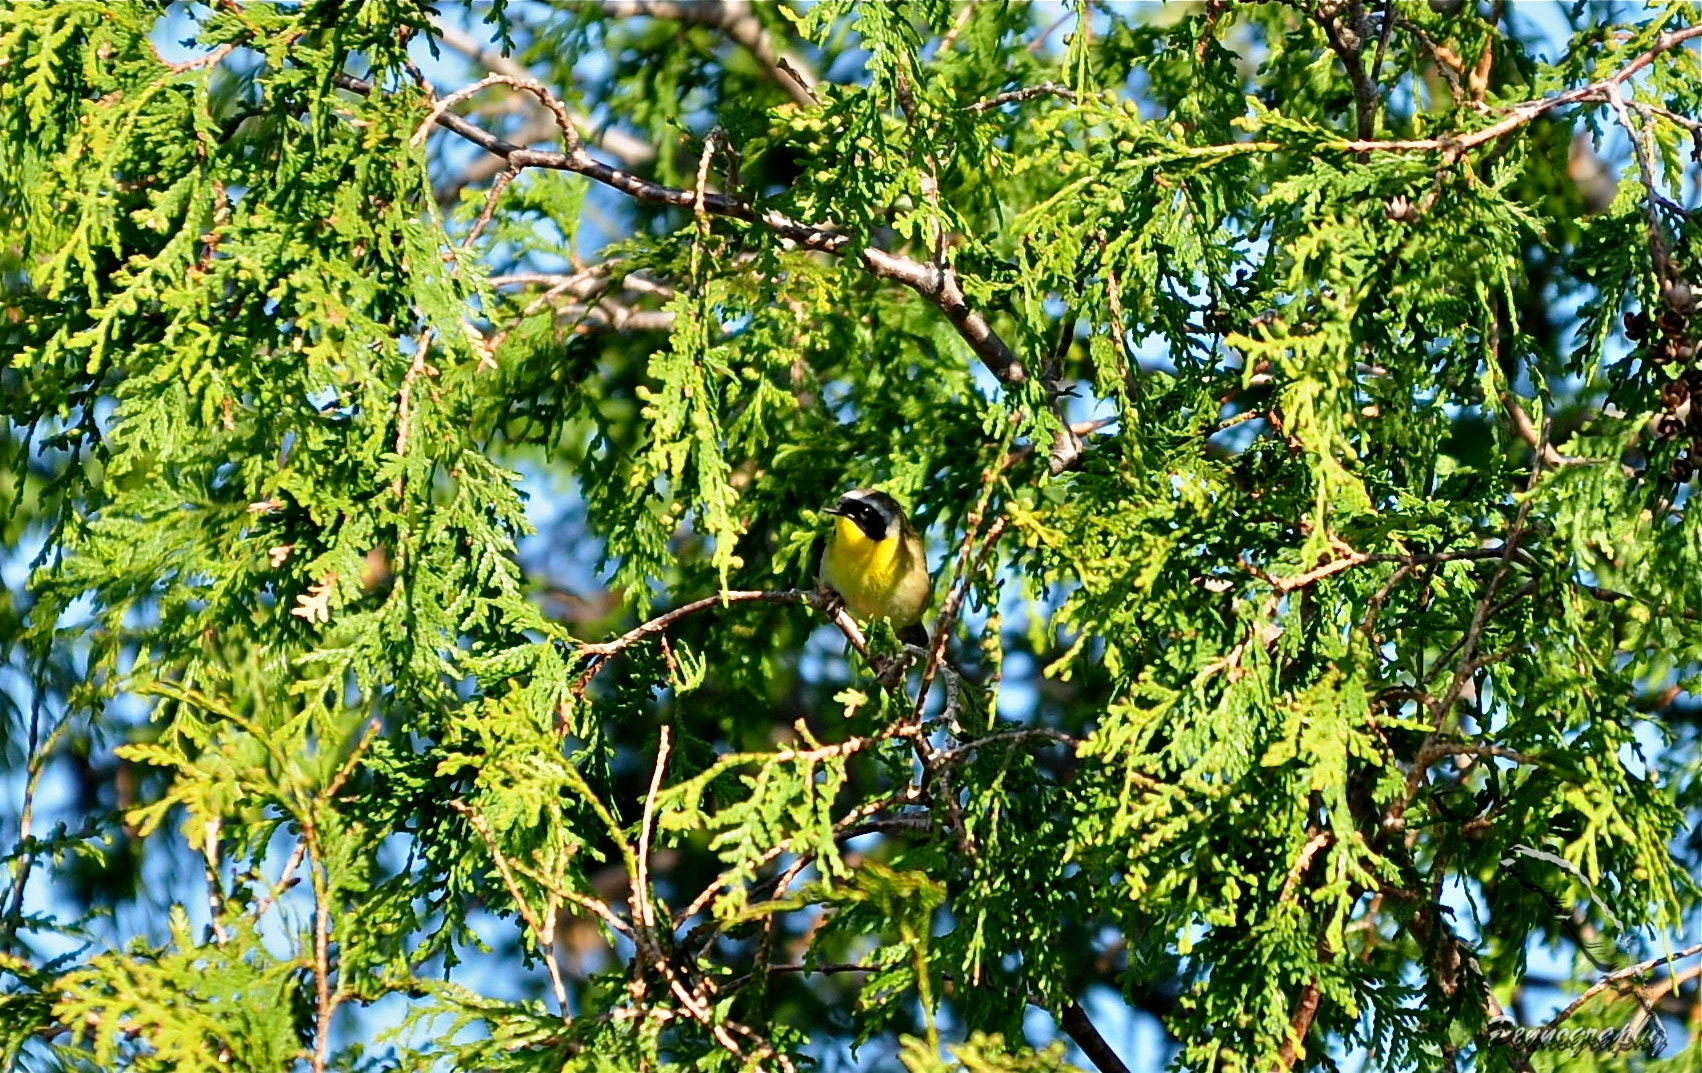 Photograph Common Yellowthroat Warbler by Jeremy Penn on 500px